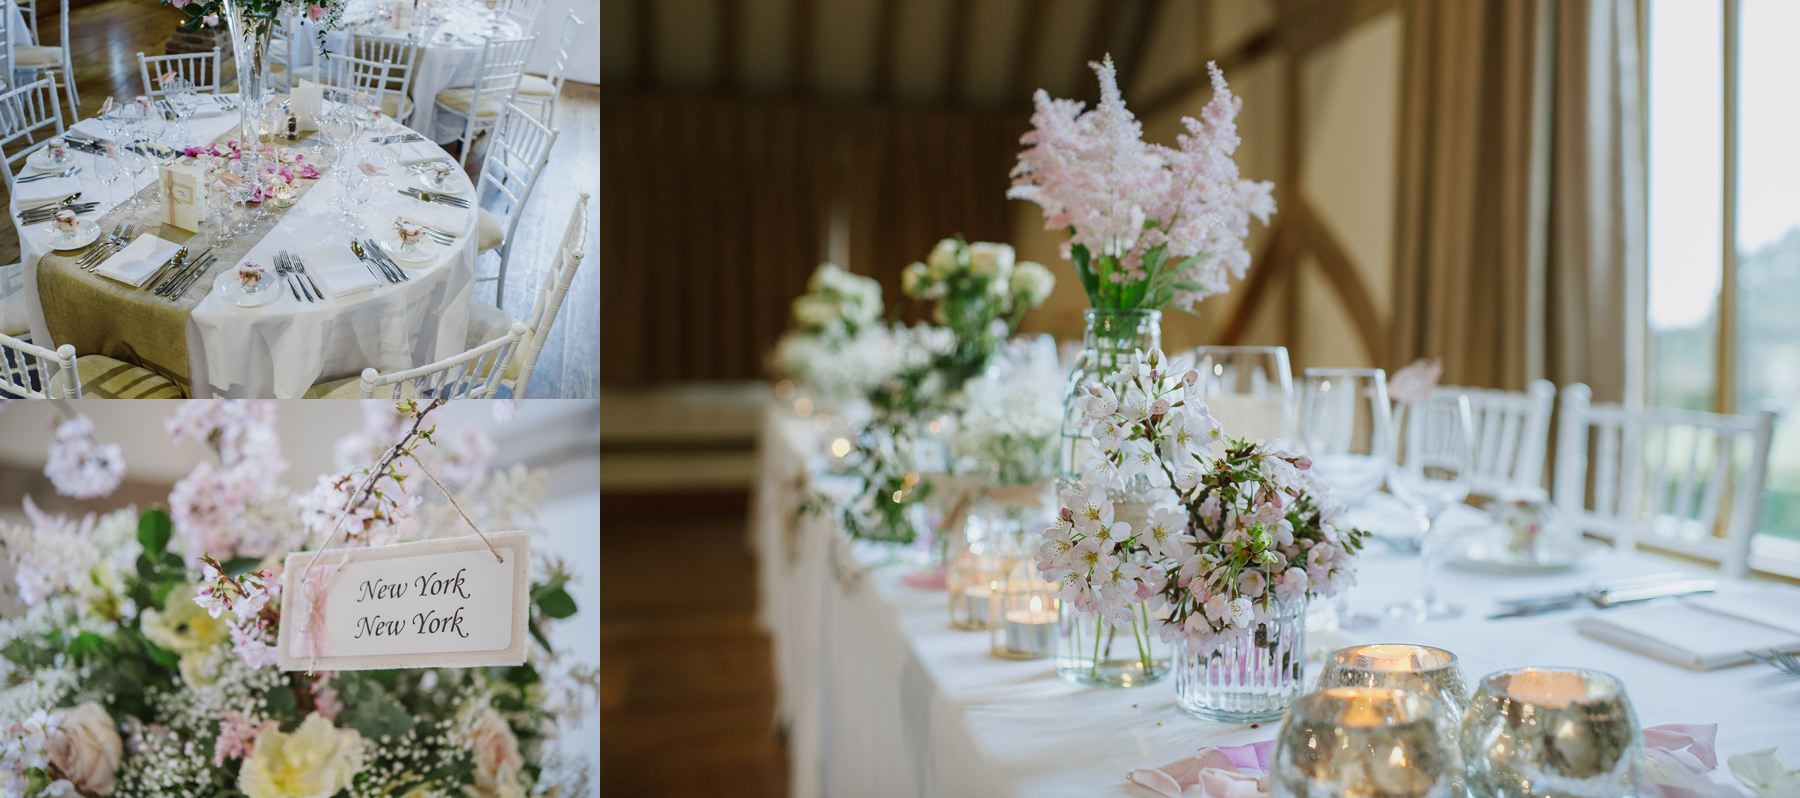 Cain Manor wedding soft pink and white table flowers